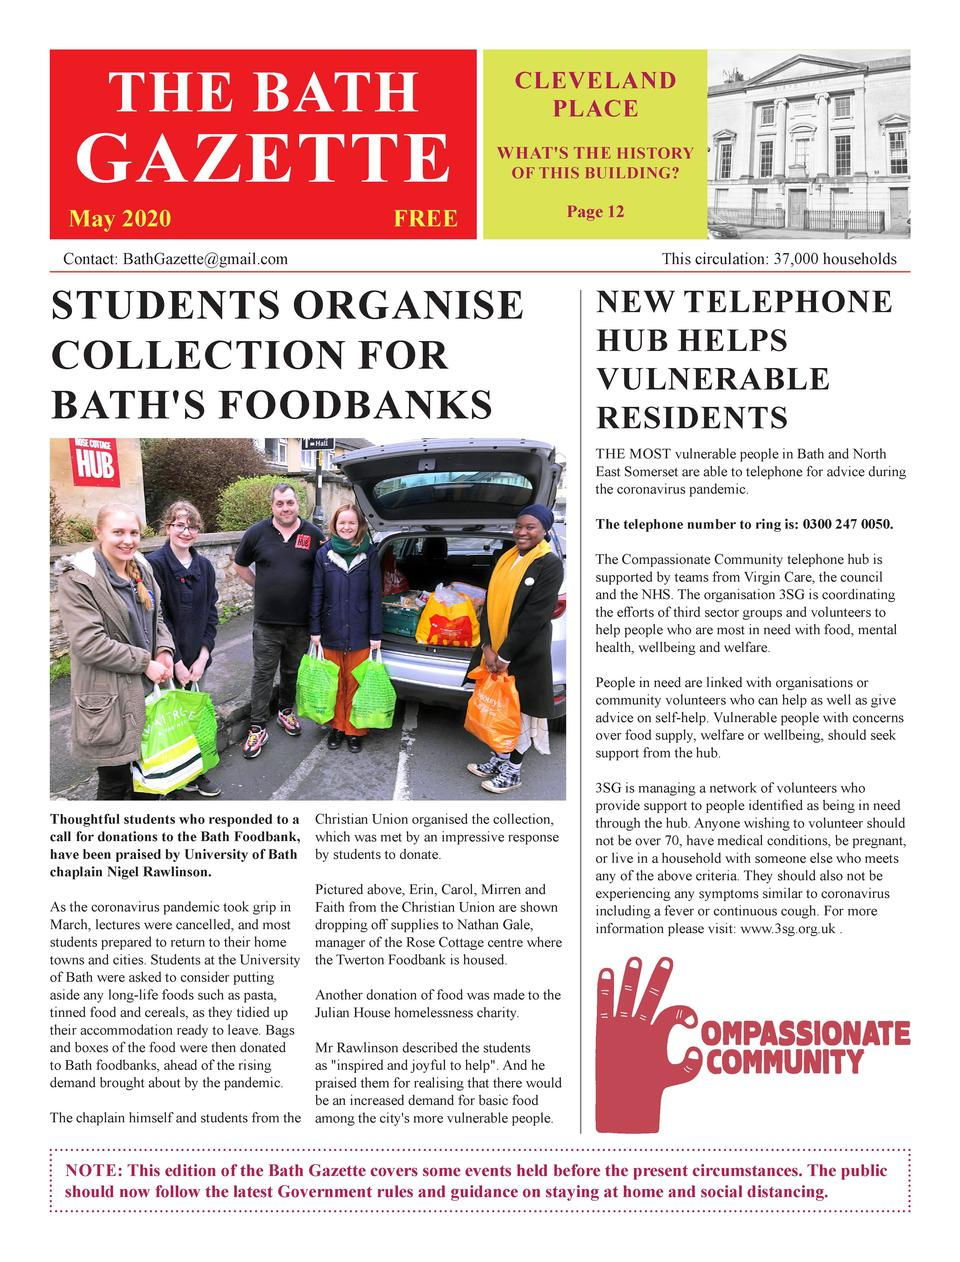 THE BATH  GAZETTE  May 2020  CLEVELAND PLACE WHAT S THE HISTORY OF THIS BUILDING   FREE  Contact  BathGazette gmail.com  P...